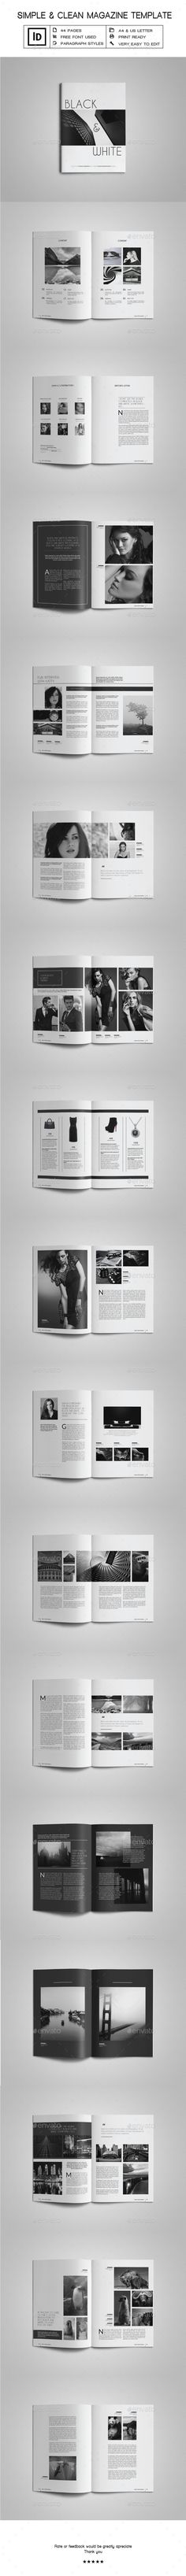 Simple & Clean Magazine Template InDesign INDD. Download here: http://graphicriver.net/item/simple-clean-magazine-template-iii/16292096?ref=ksioks